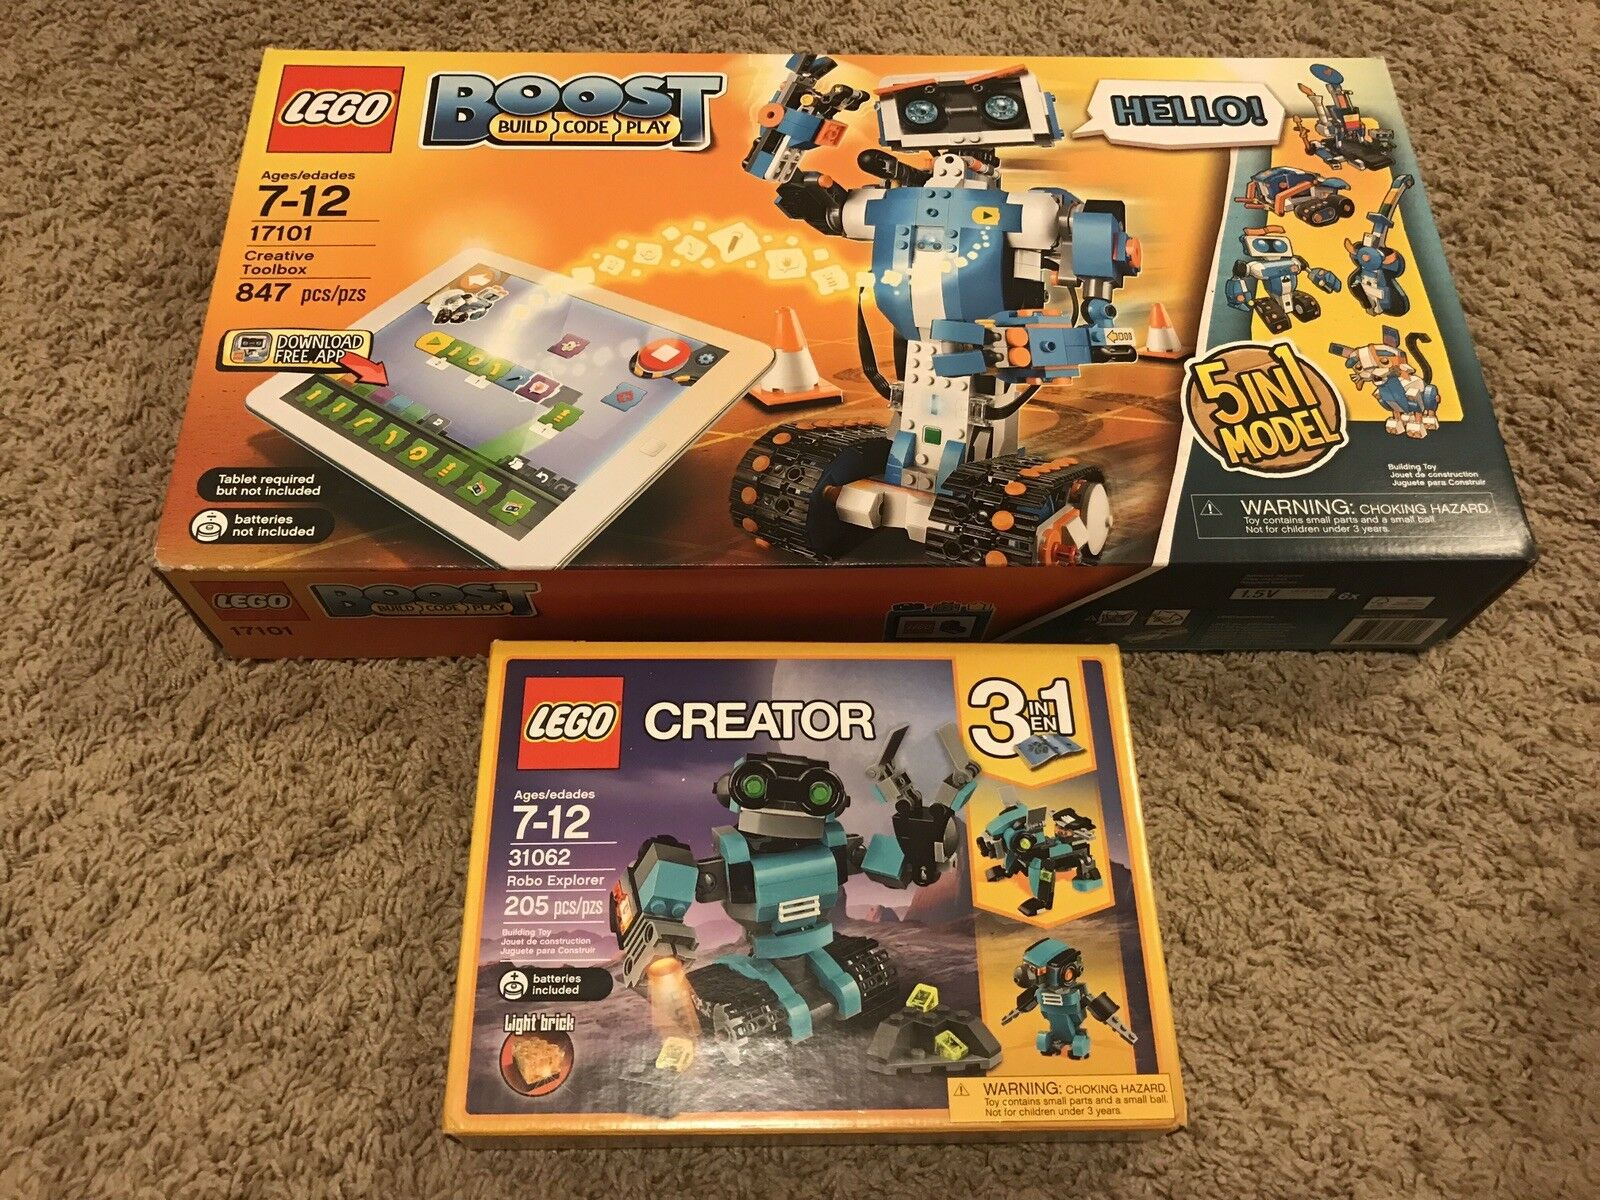 LEGO 17101 BOOST CREATIVE TOOLBOX + 31062 Creator Robot Explorer 3 in 1